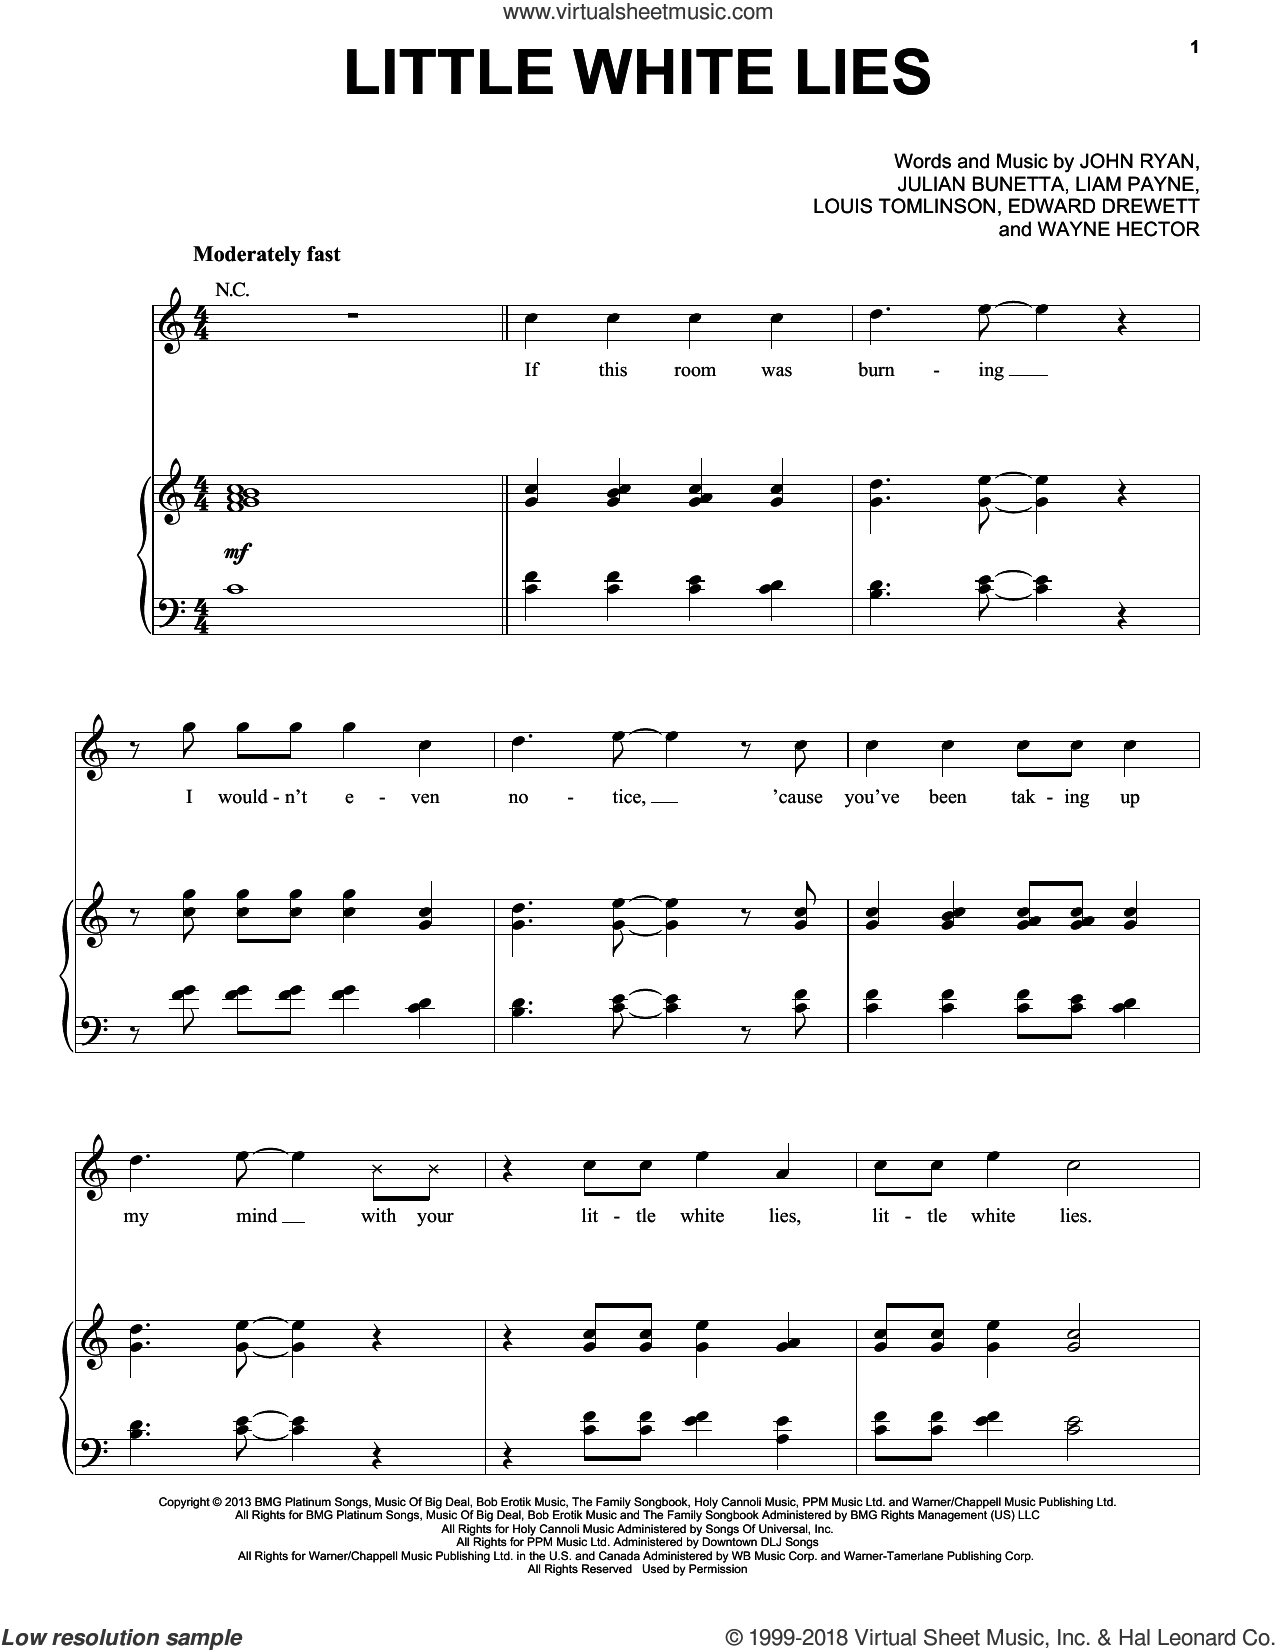 Little White Lies sheet music for voice, piano or guitar by One Direction, Edward Drewett, John Ryan, Julian Bunetta, Liam Payne, Louis Tomlinson and Wayne Hector, intermediate skill level